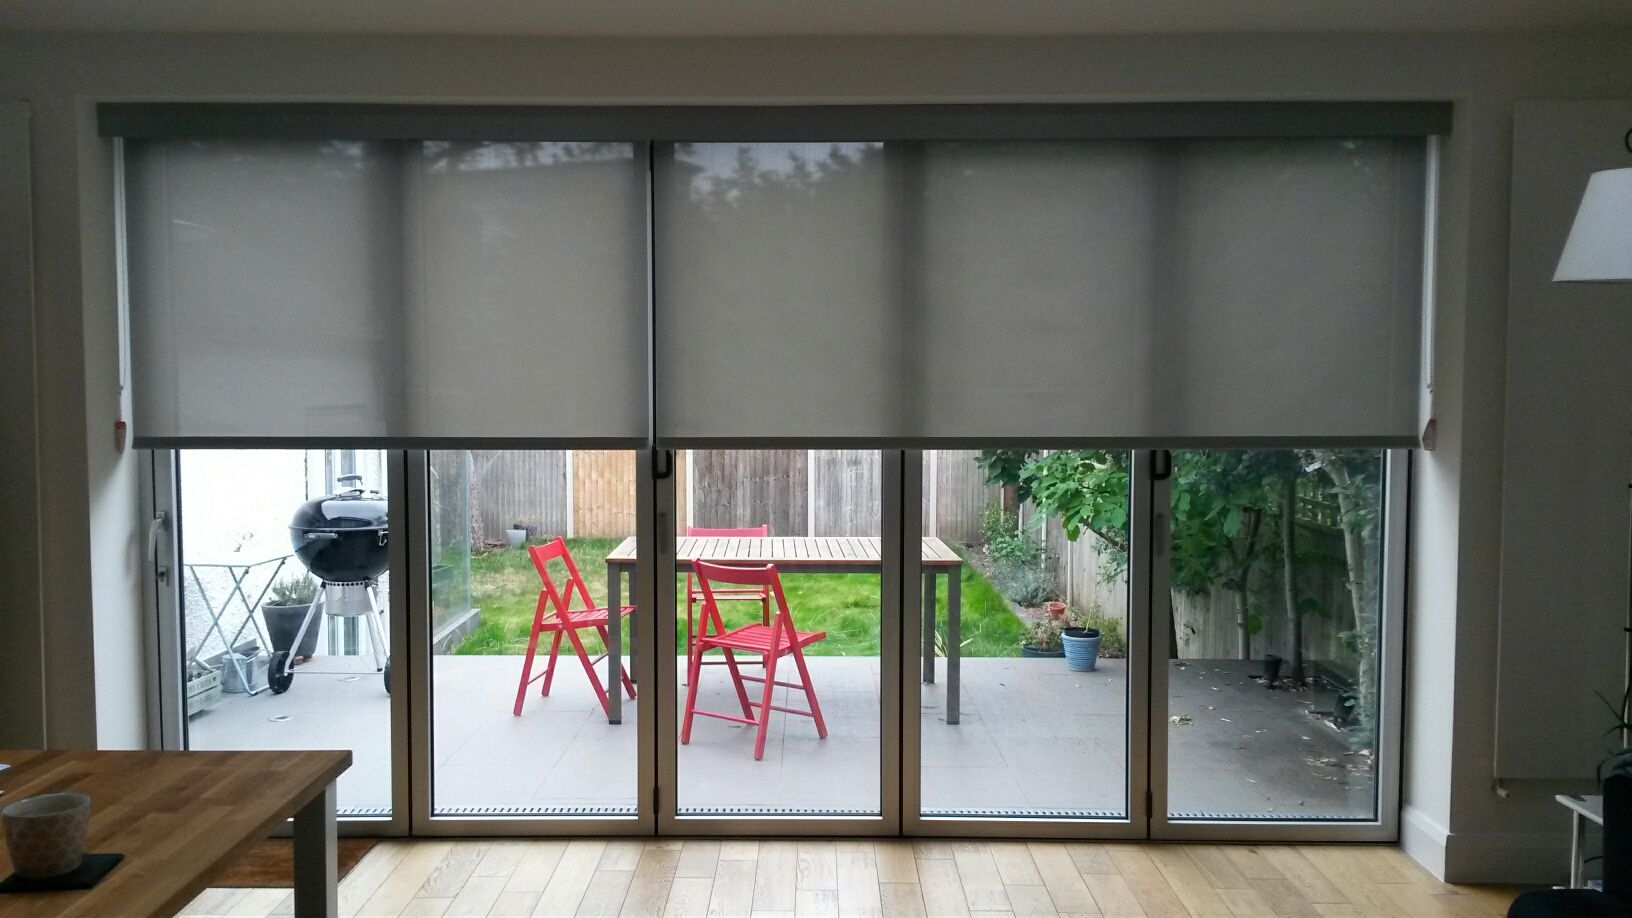 Blfold door blinds specialist screen fabrics cover huge for Blinds for french doors ideas